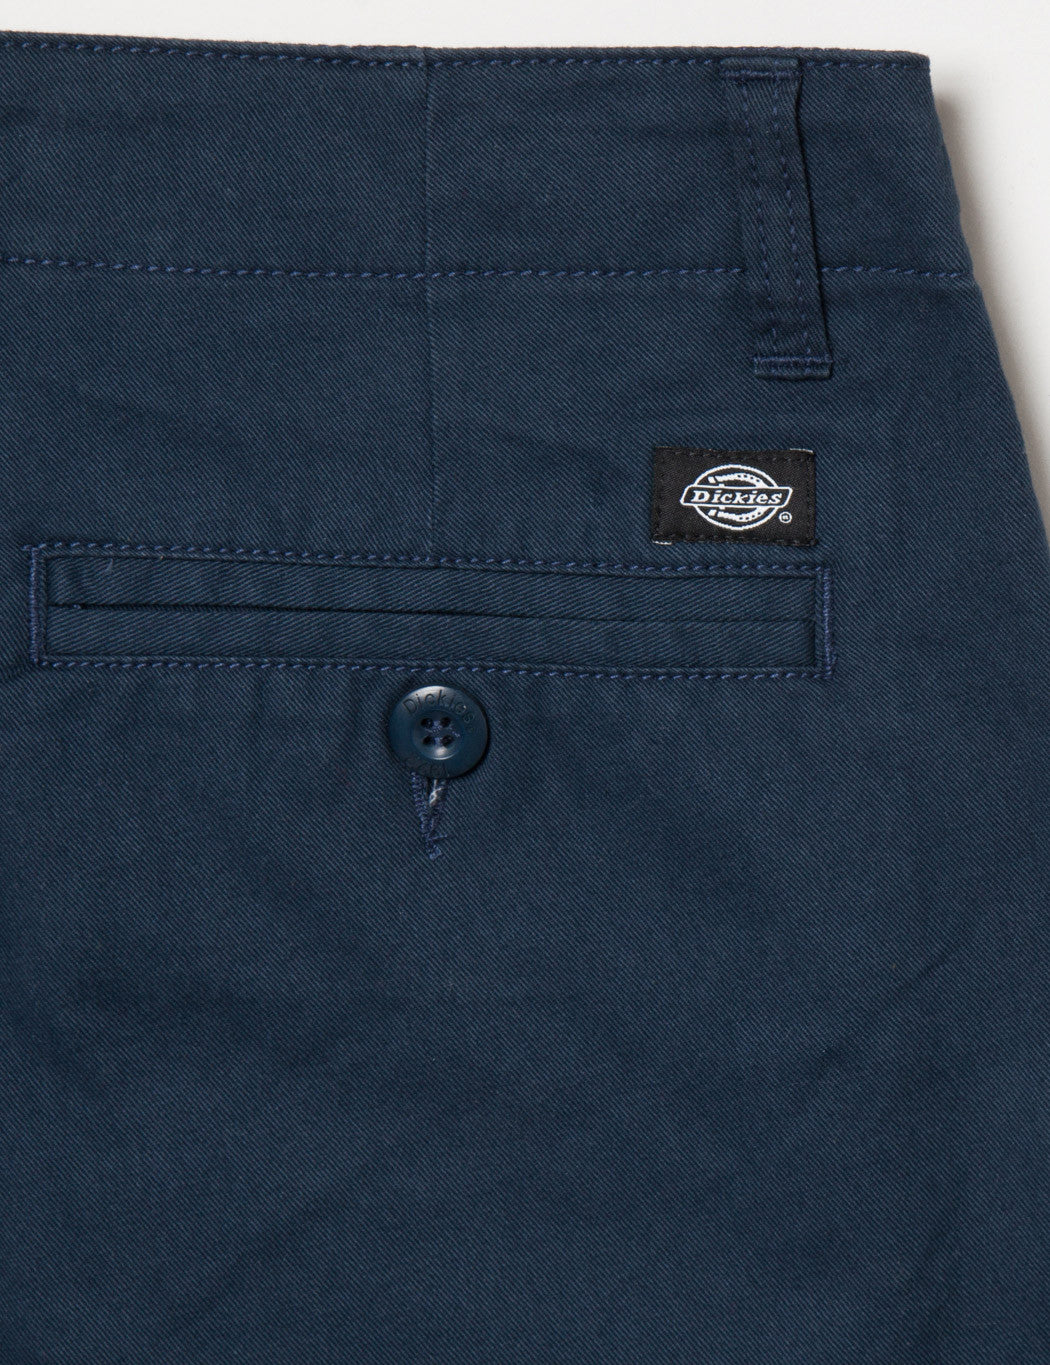 Dickies Palm Springs Shorts - Navy